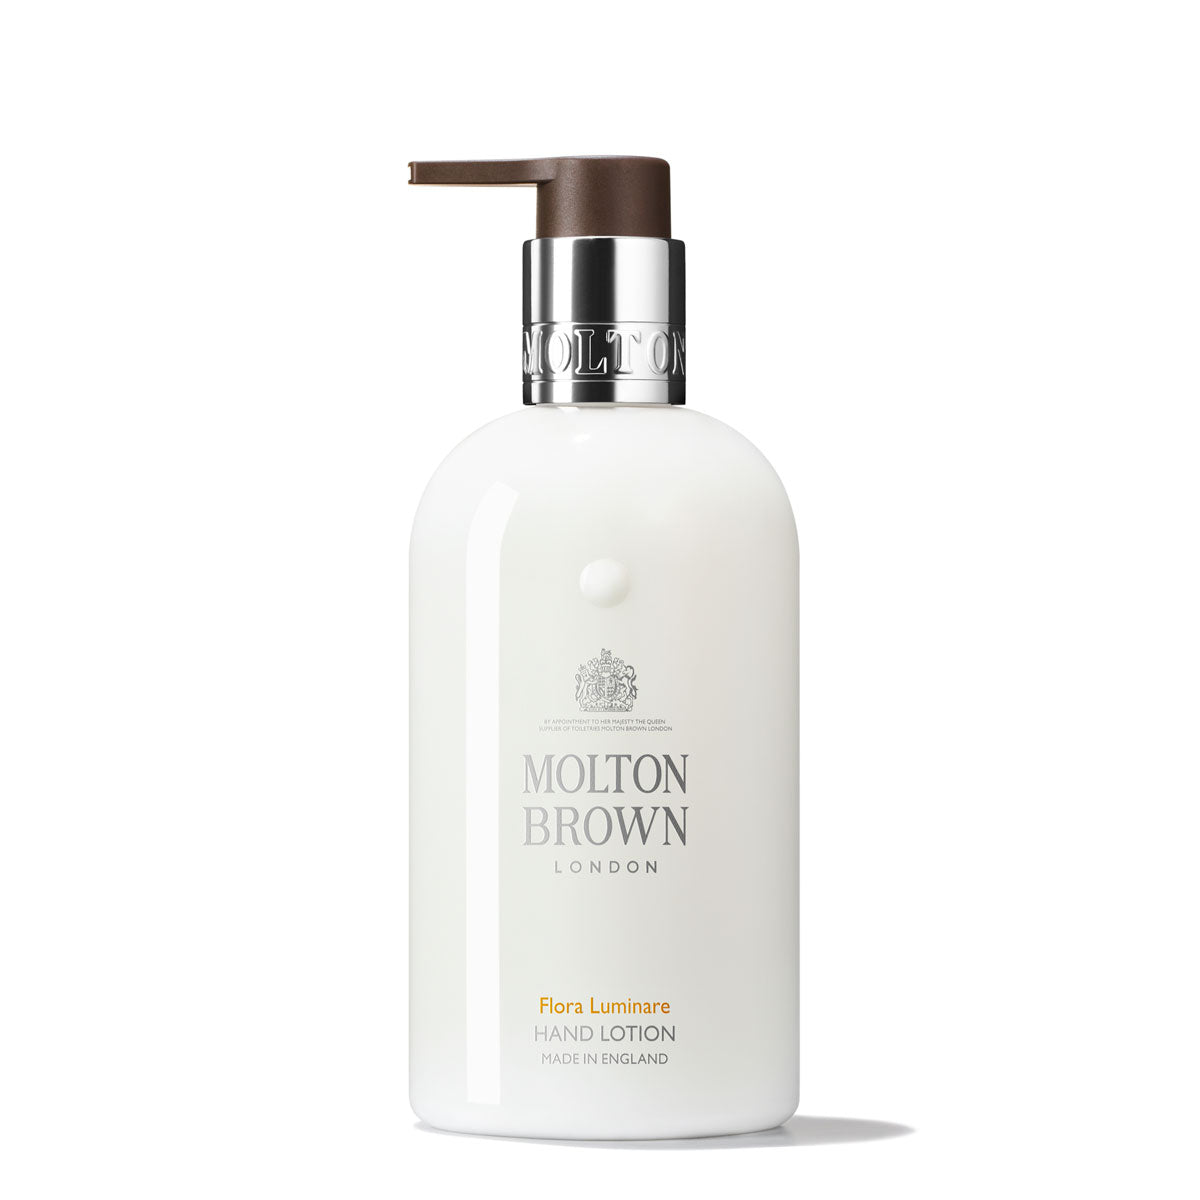 Molton Brown Flora Luminare Hand Lotion 300ml